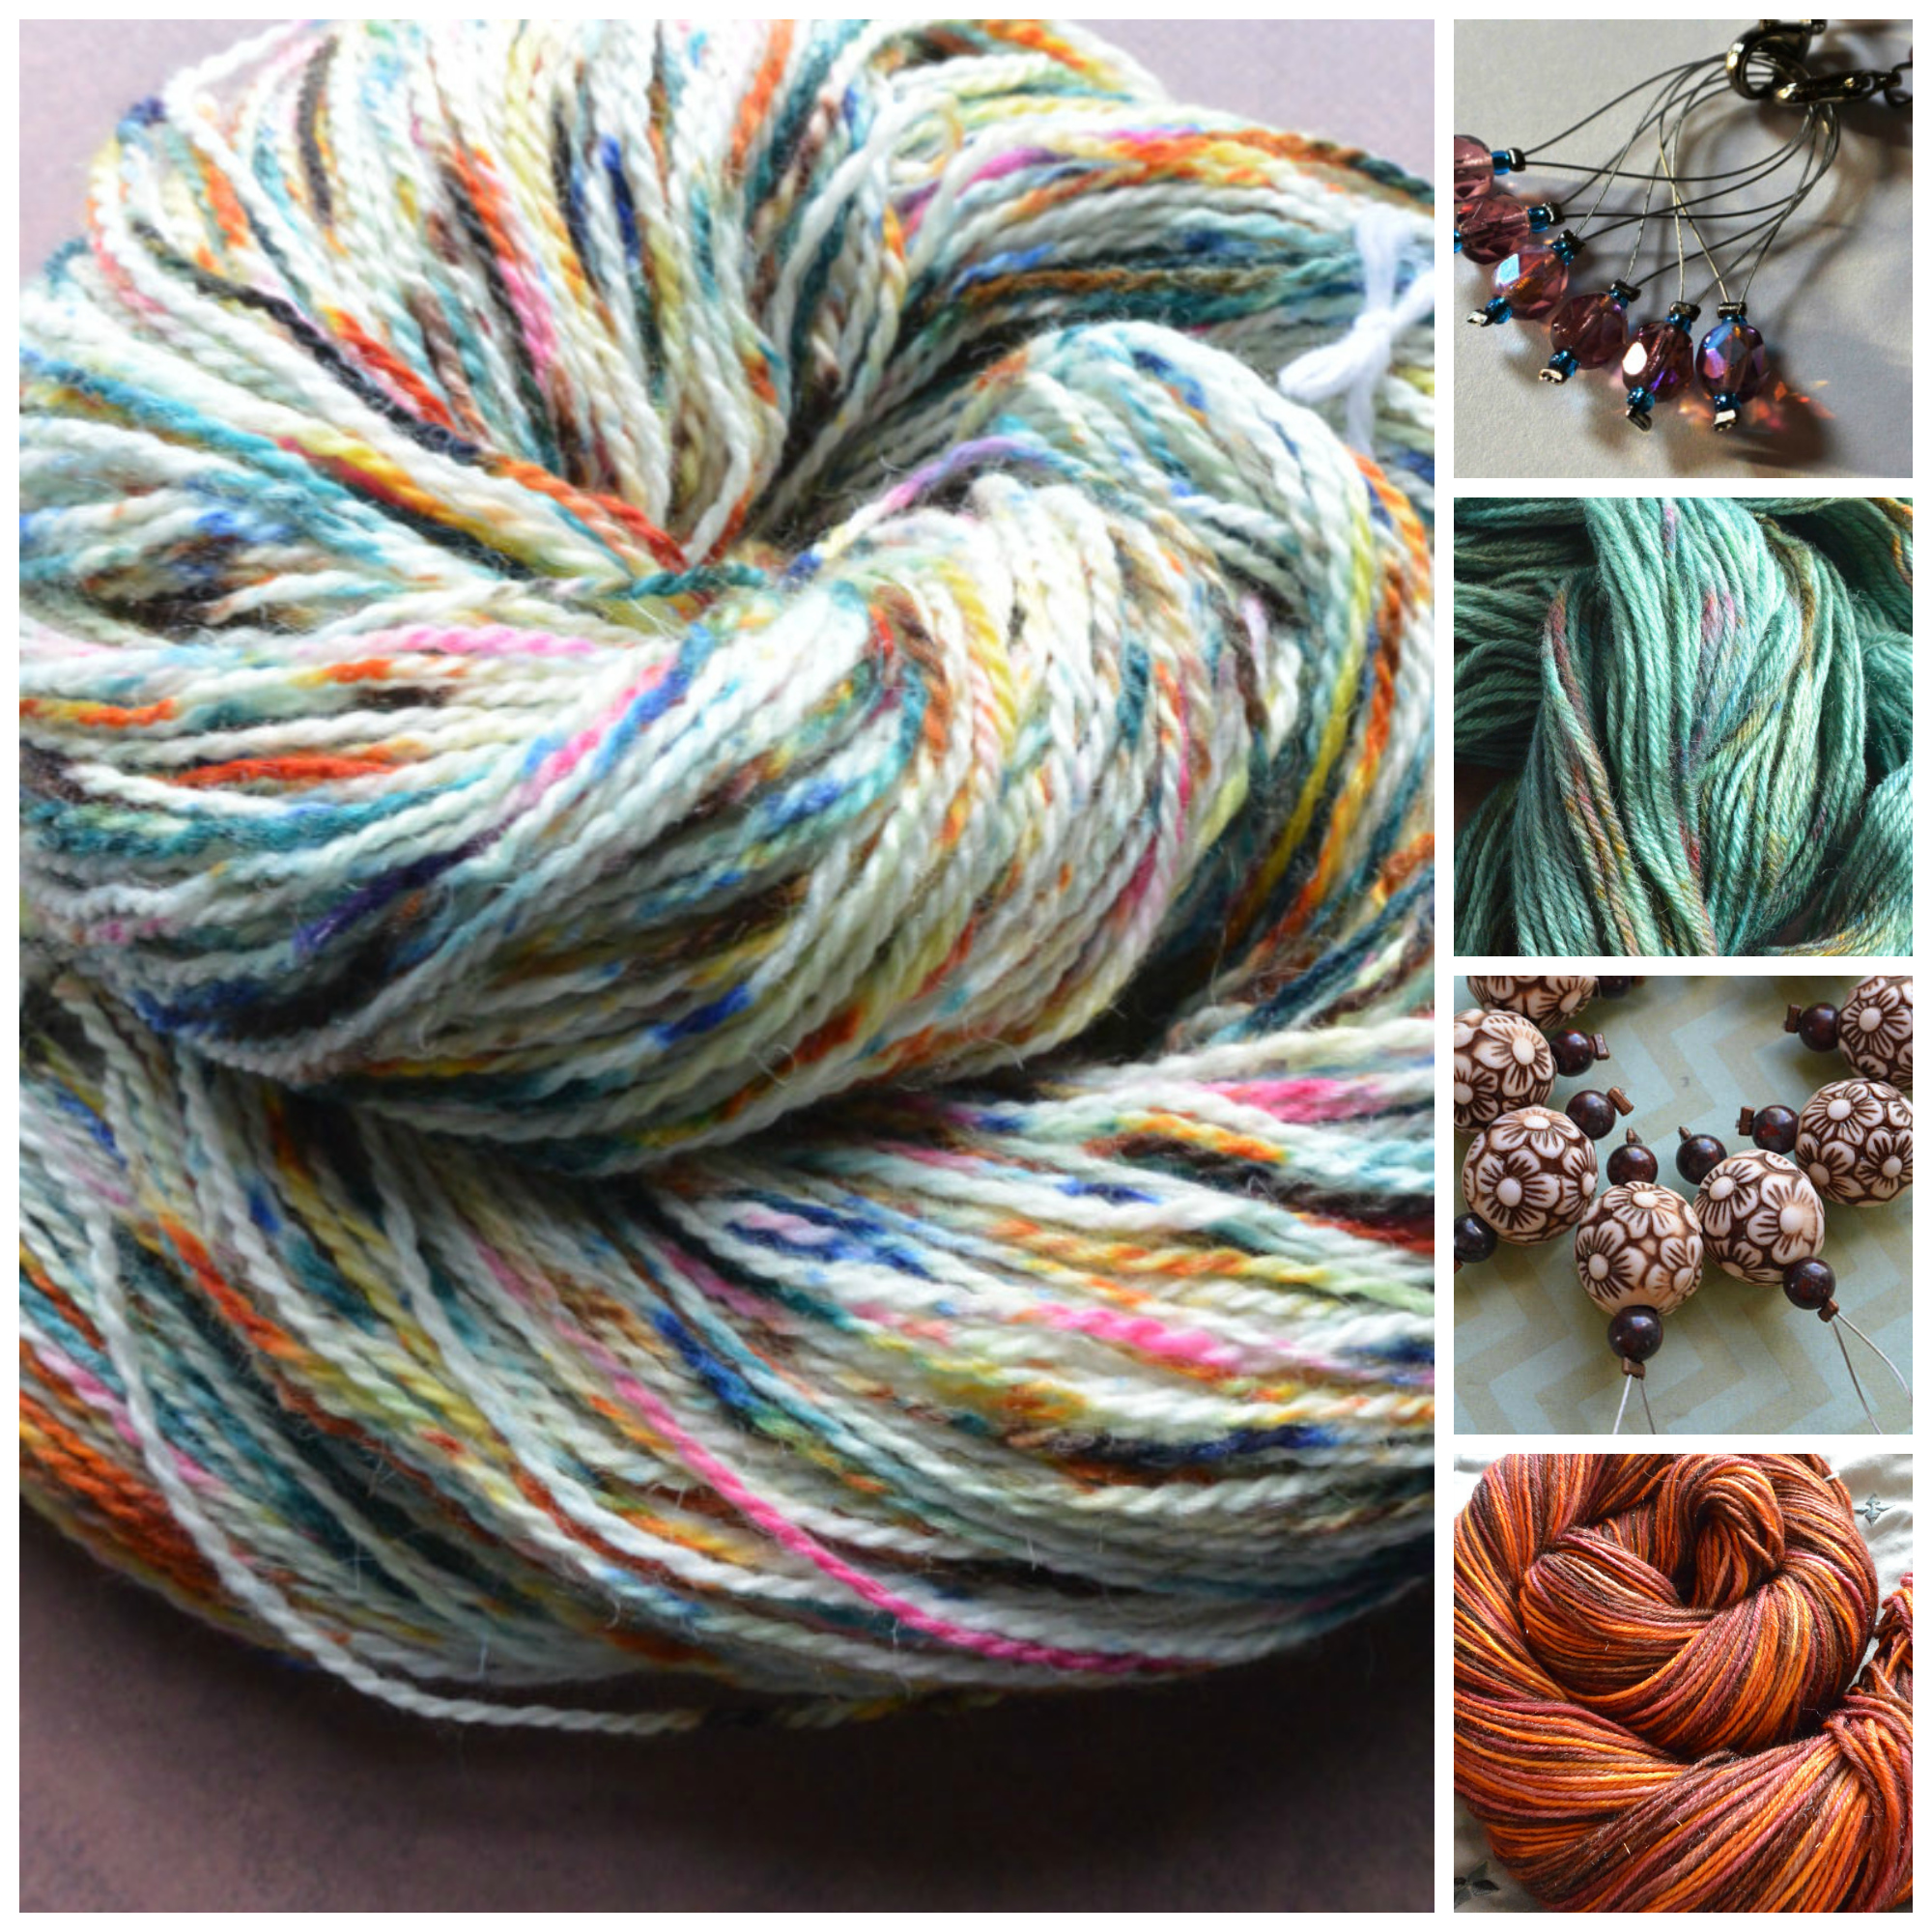 High Strung Spectra - Knitters, crochet-ers, yarn enthusiasts, and fiber artists- rejoice!  Leah's store is open for business! She also takes a limited number of custom orders each month, so scuttle!